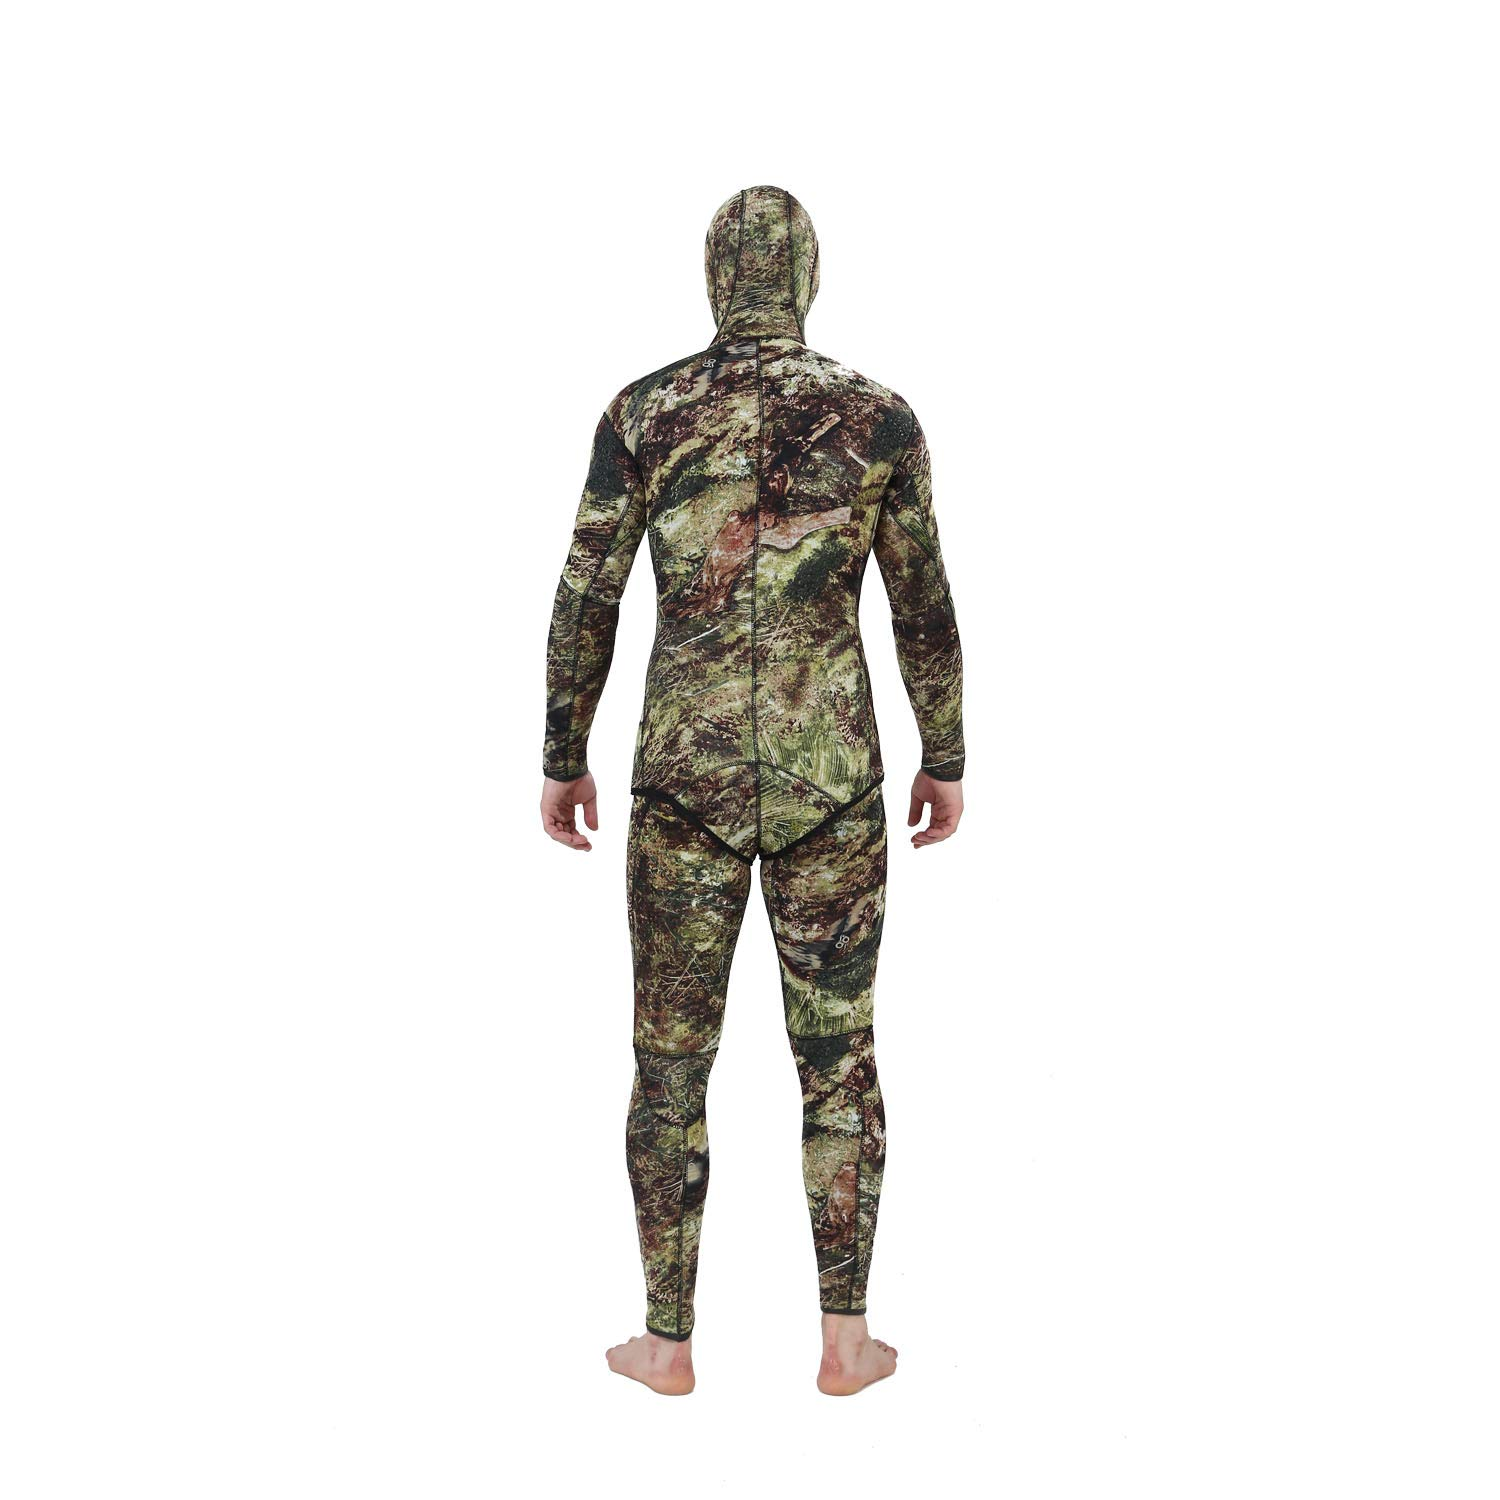 Flexel Camo Spearfishing Wetsuits Men Premium Camouflage Neoprene 2-Pieces Hoodie Freediving Fullsuit for Scuba Diving Snorkeling Swimming (7mm Grass camo, Large) by Flexel (Image #4)